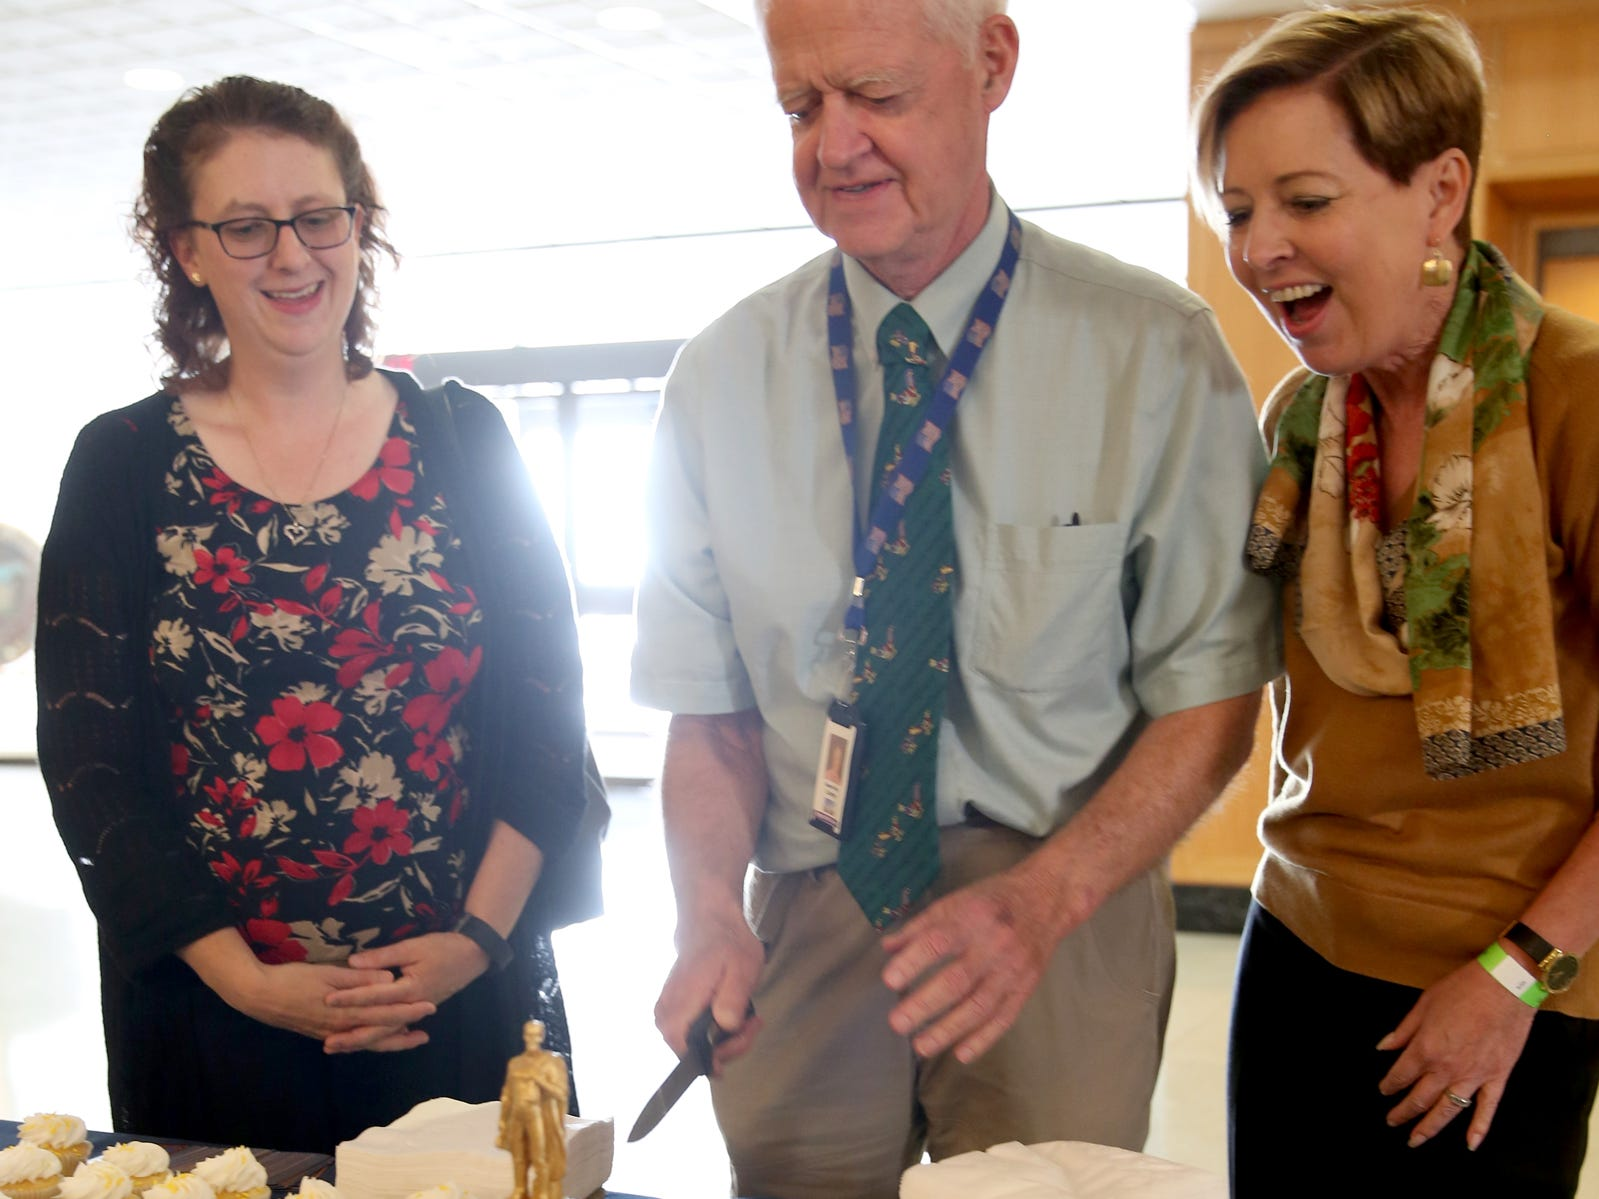 Jenny Lau, from left, who helped start a campaign to raise money to re-gild the Gold Man in 1984, Senate President Peter Courtney and Joan Plank, the Oregon State Capitol Foundation Chair, cut the birthday cake during an 80th birthday party for the Oregon Pioneer, aka the Gold Man, at the Oregon State Capitol in Salem on Tuesday, Sep. 18, 2018.